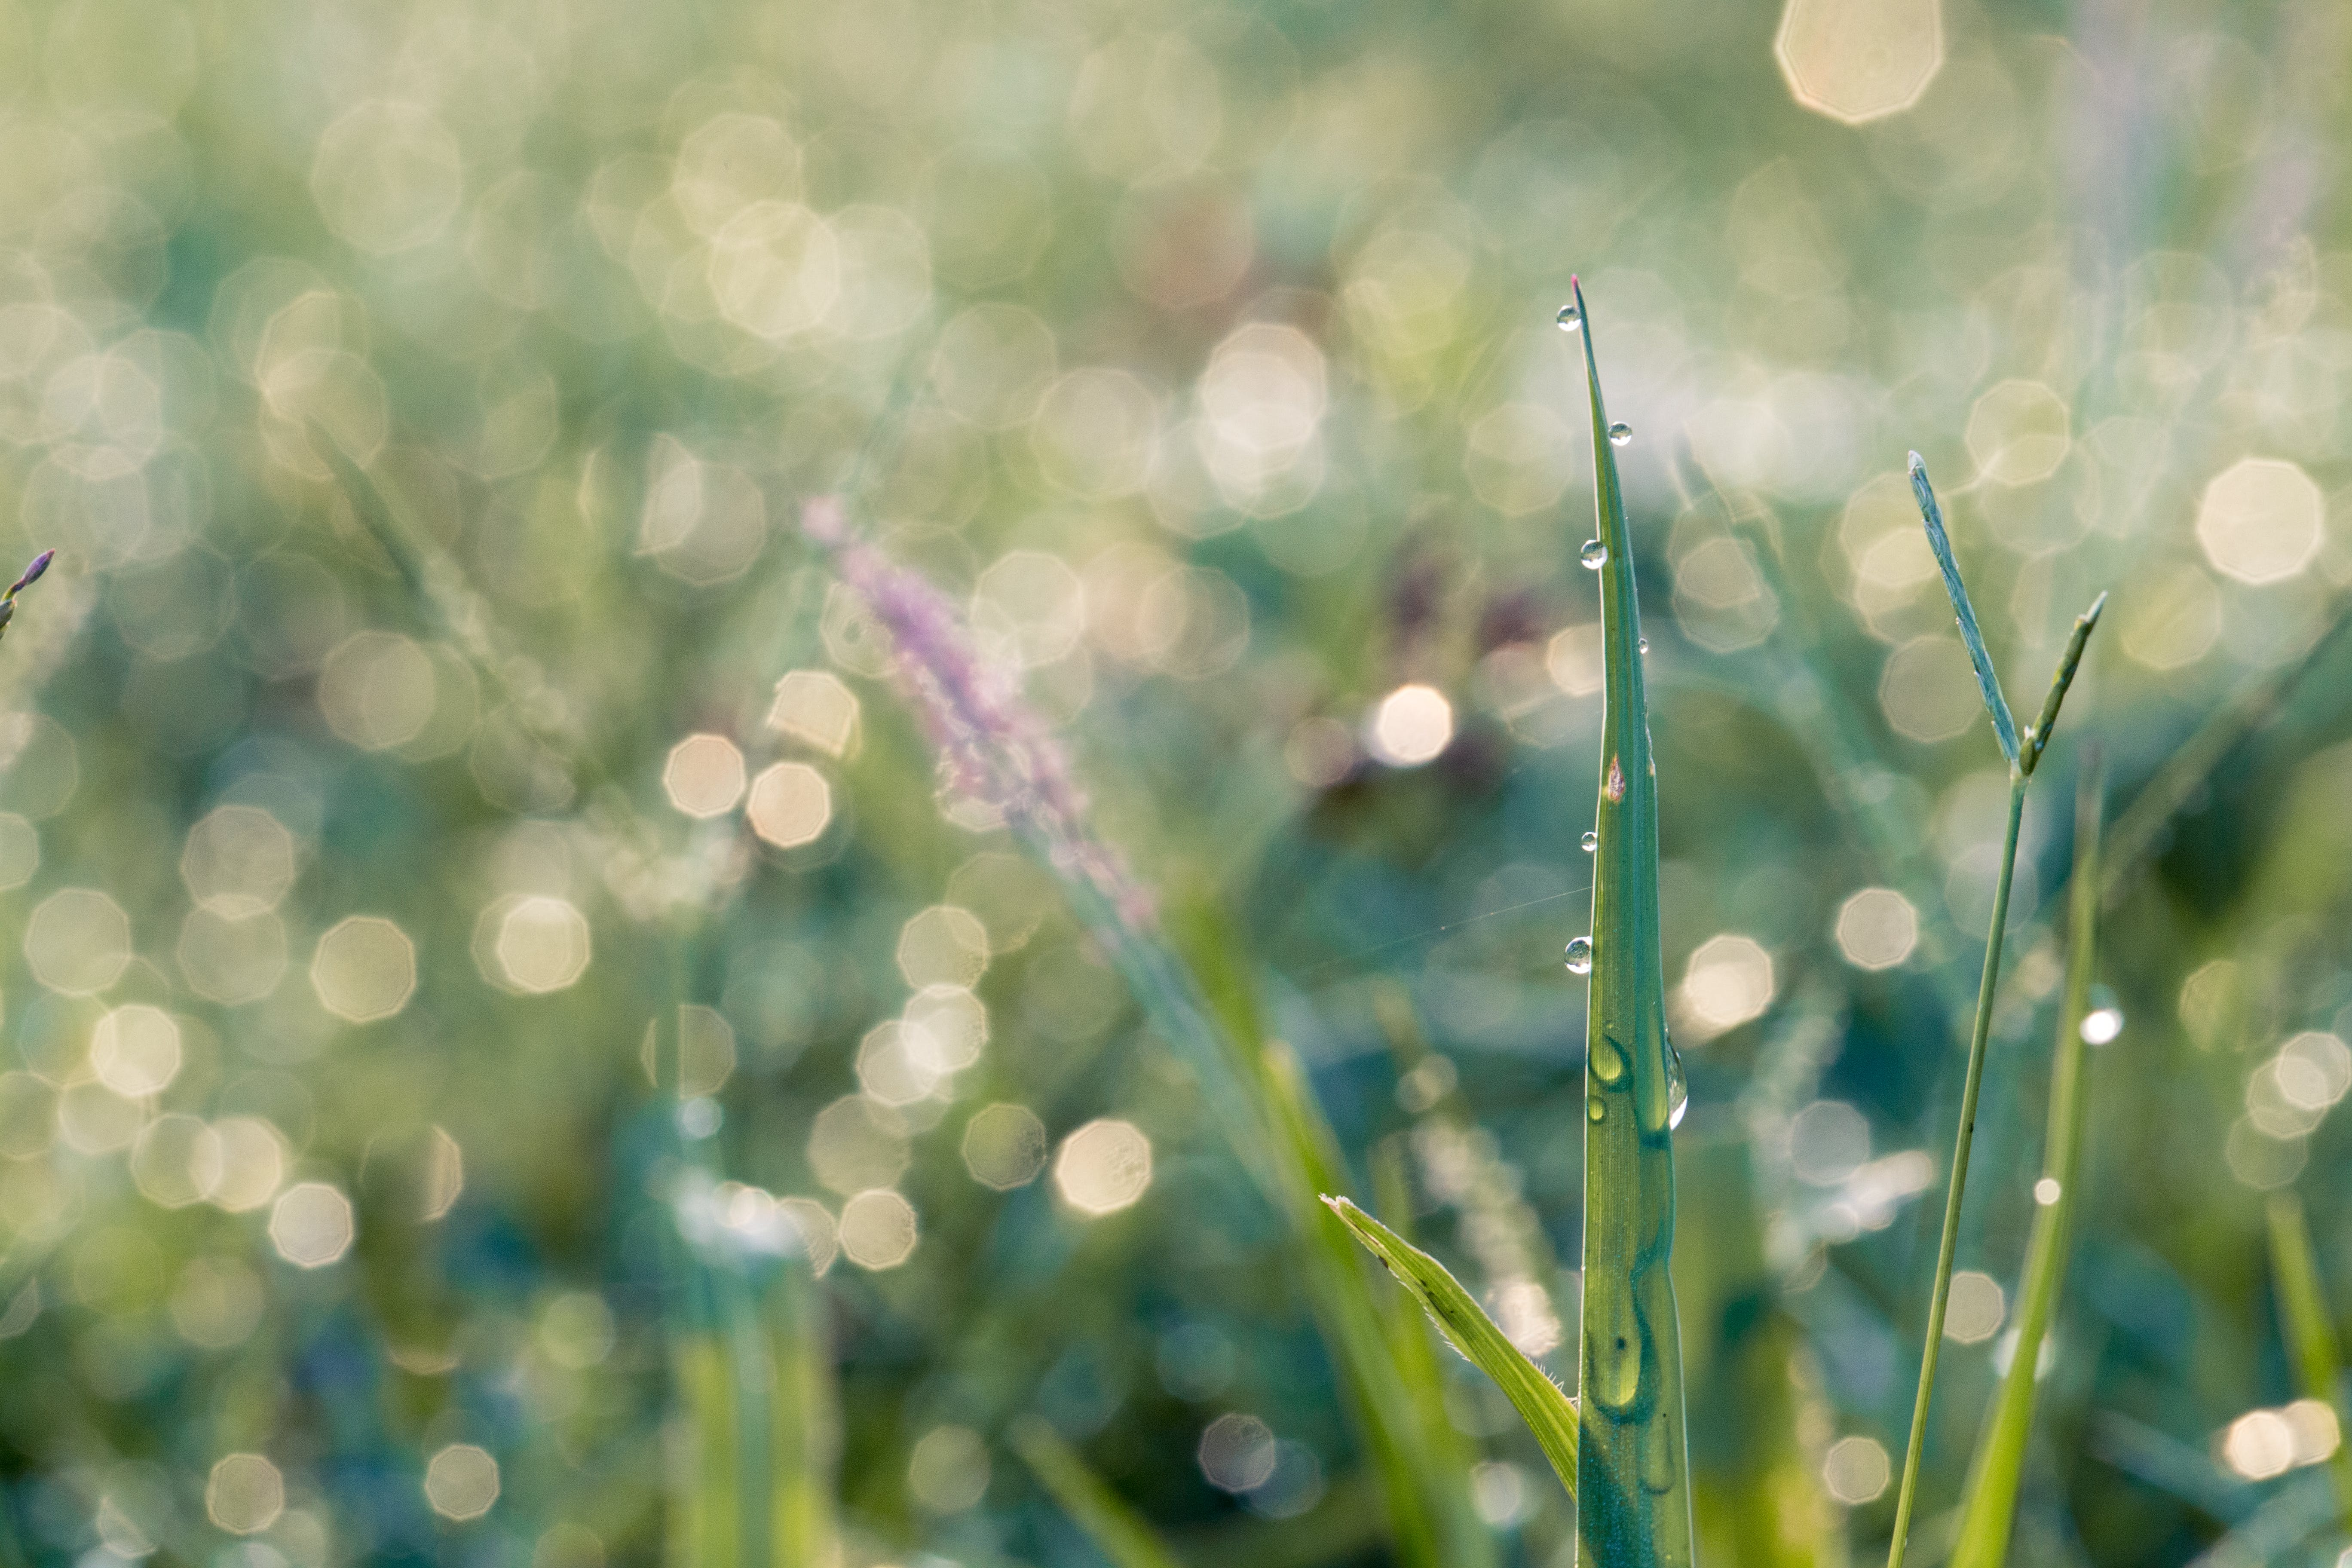 Macro Photography Of Blades Of Grass